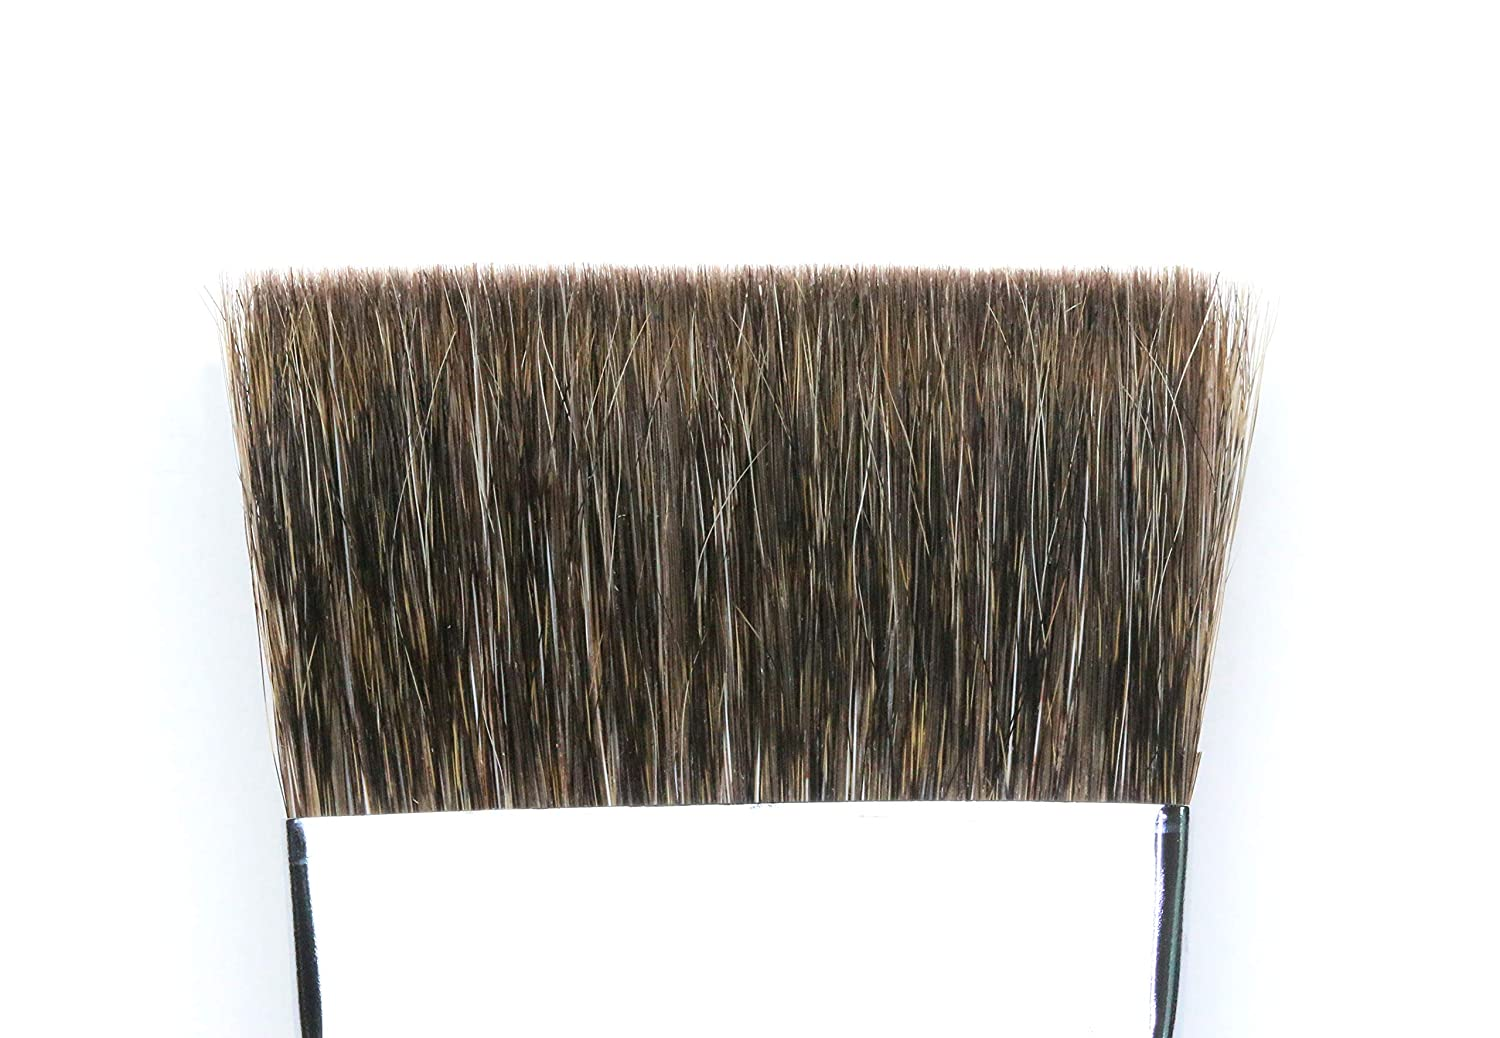 No.3 ~ No.13 Herend Brush Series F-1100 No.7 for Watercolor with Chipmunk Hair//Hake Flat Paintbrush